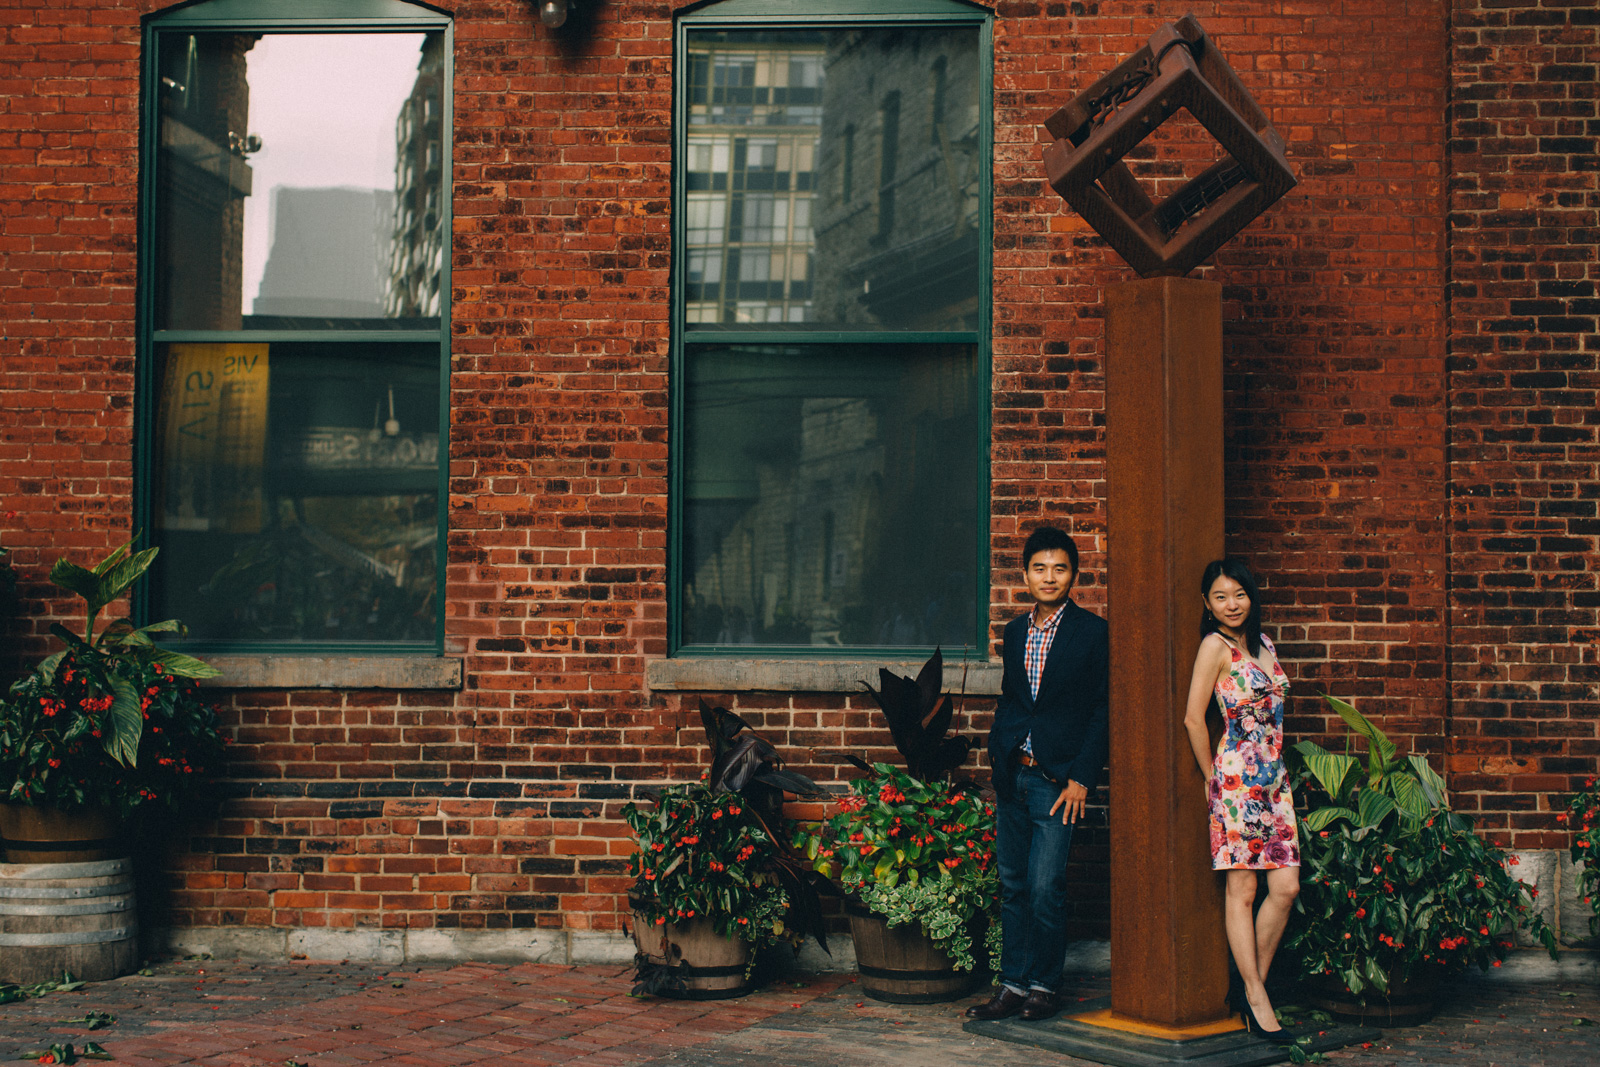 Distillery-District-engagement-photos-Toronto-wedding-photography-by-Sam-Wong-of-Artanis-Collective_016.jpg